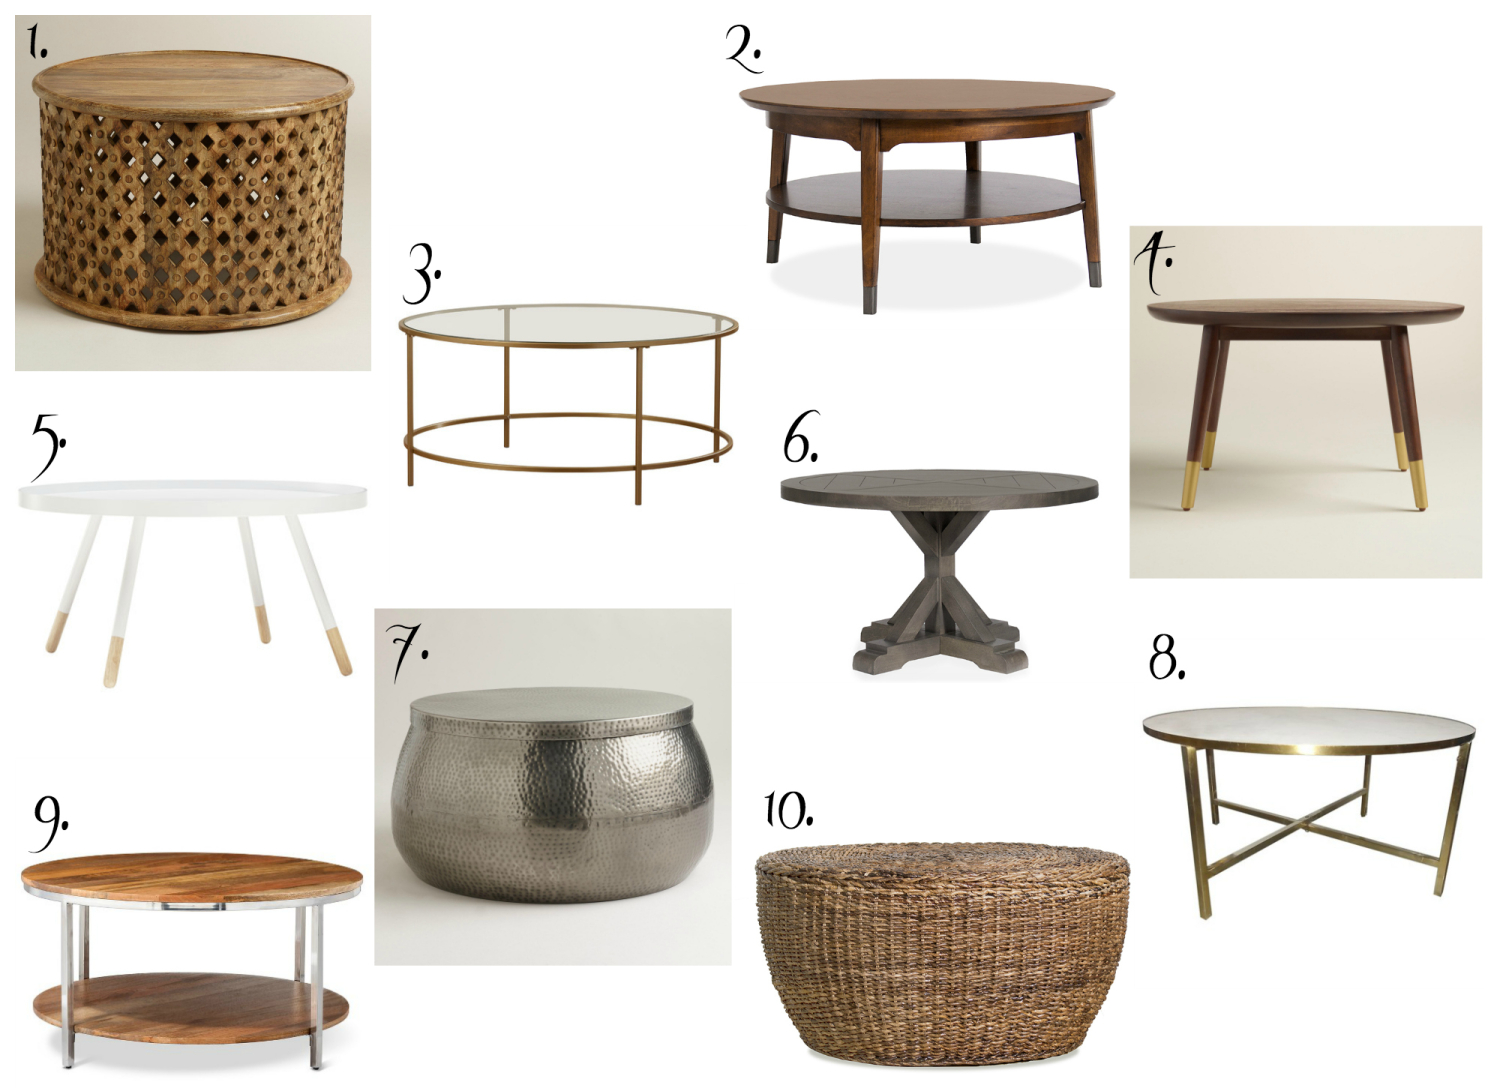 Genial Ten Affordable Round Coffee Tables, All Gorgeous And All Under $300!